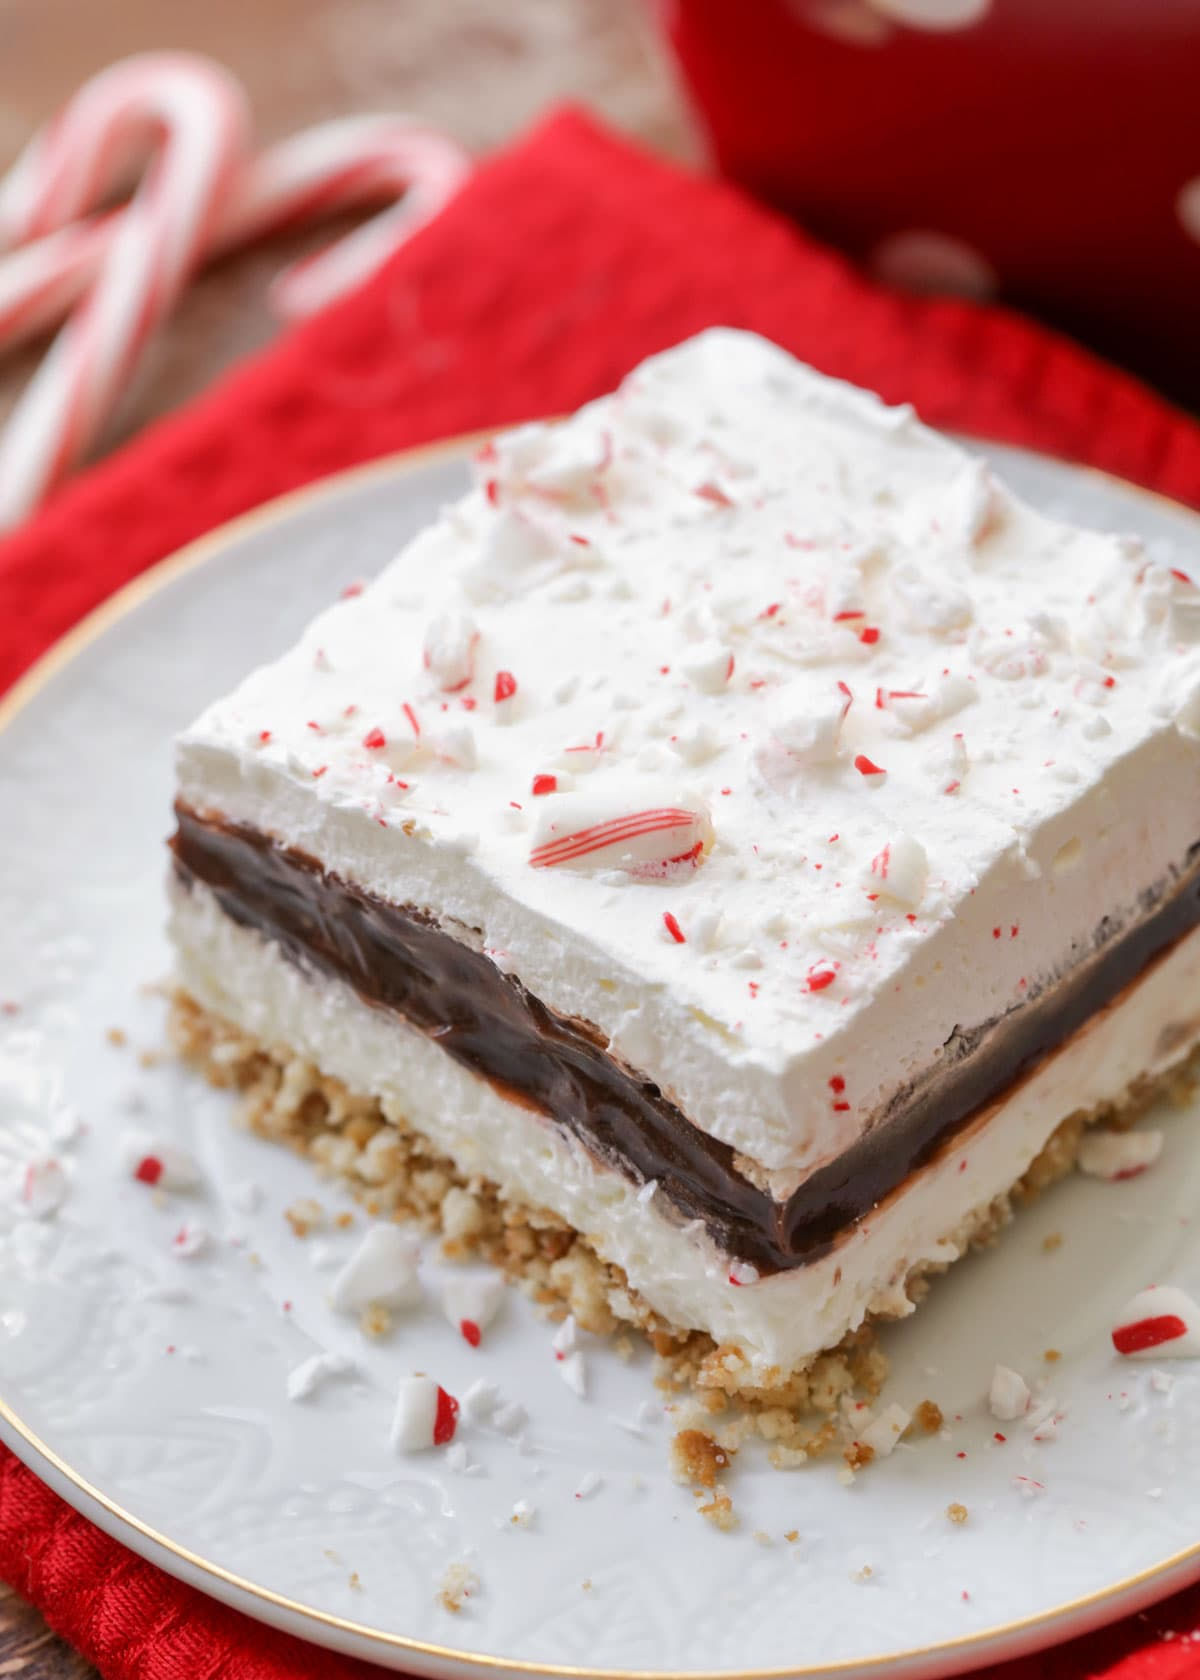 Slice of peppermint chocolate delight served on a white plate topped with crushed candy cane.